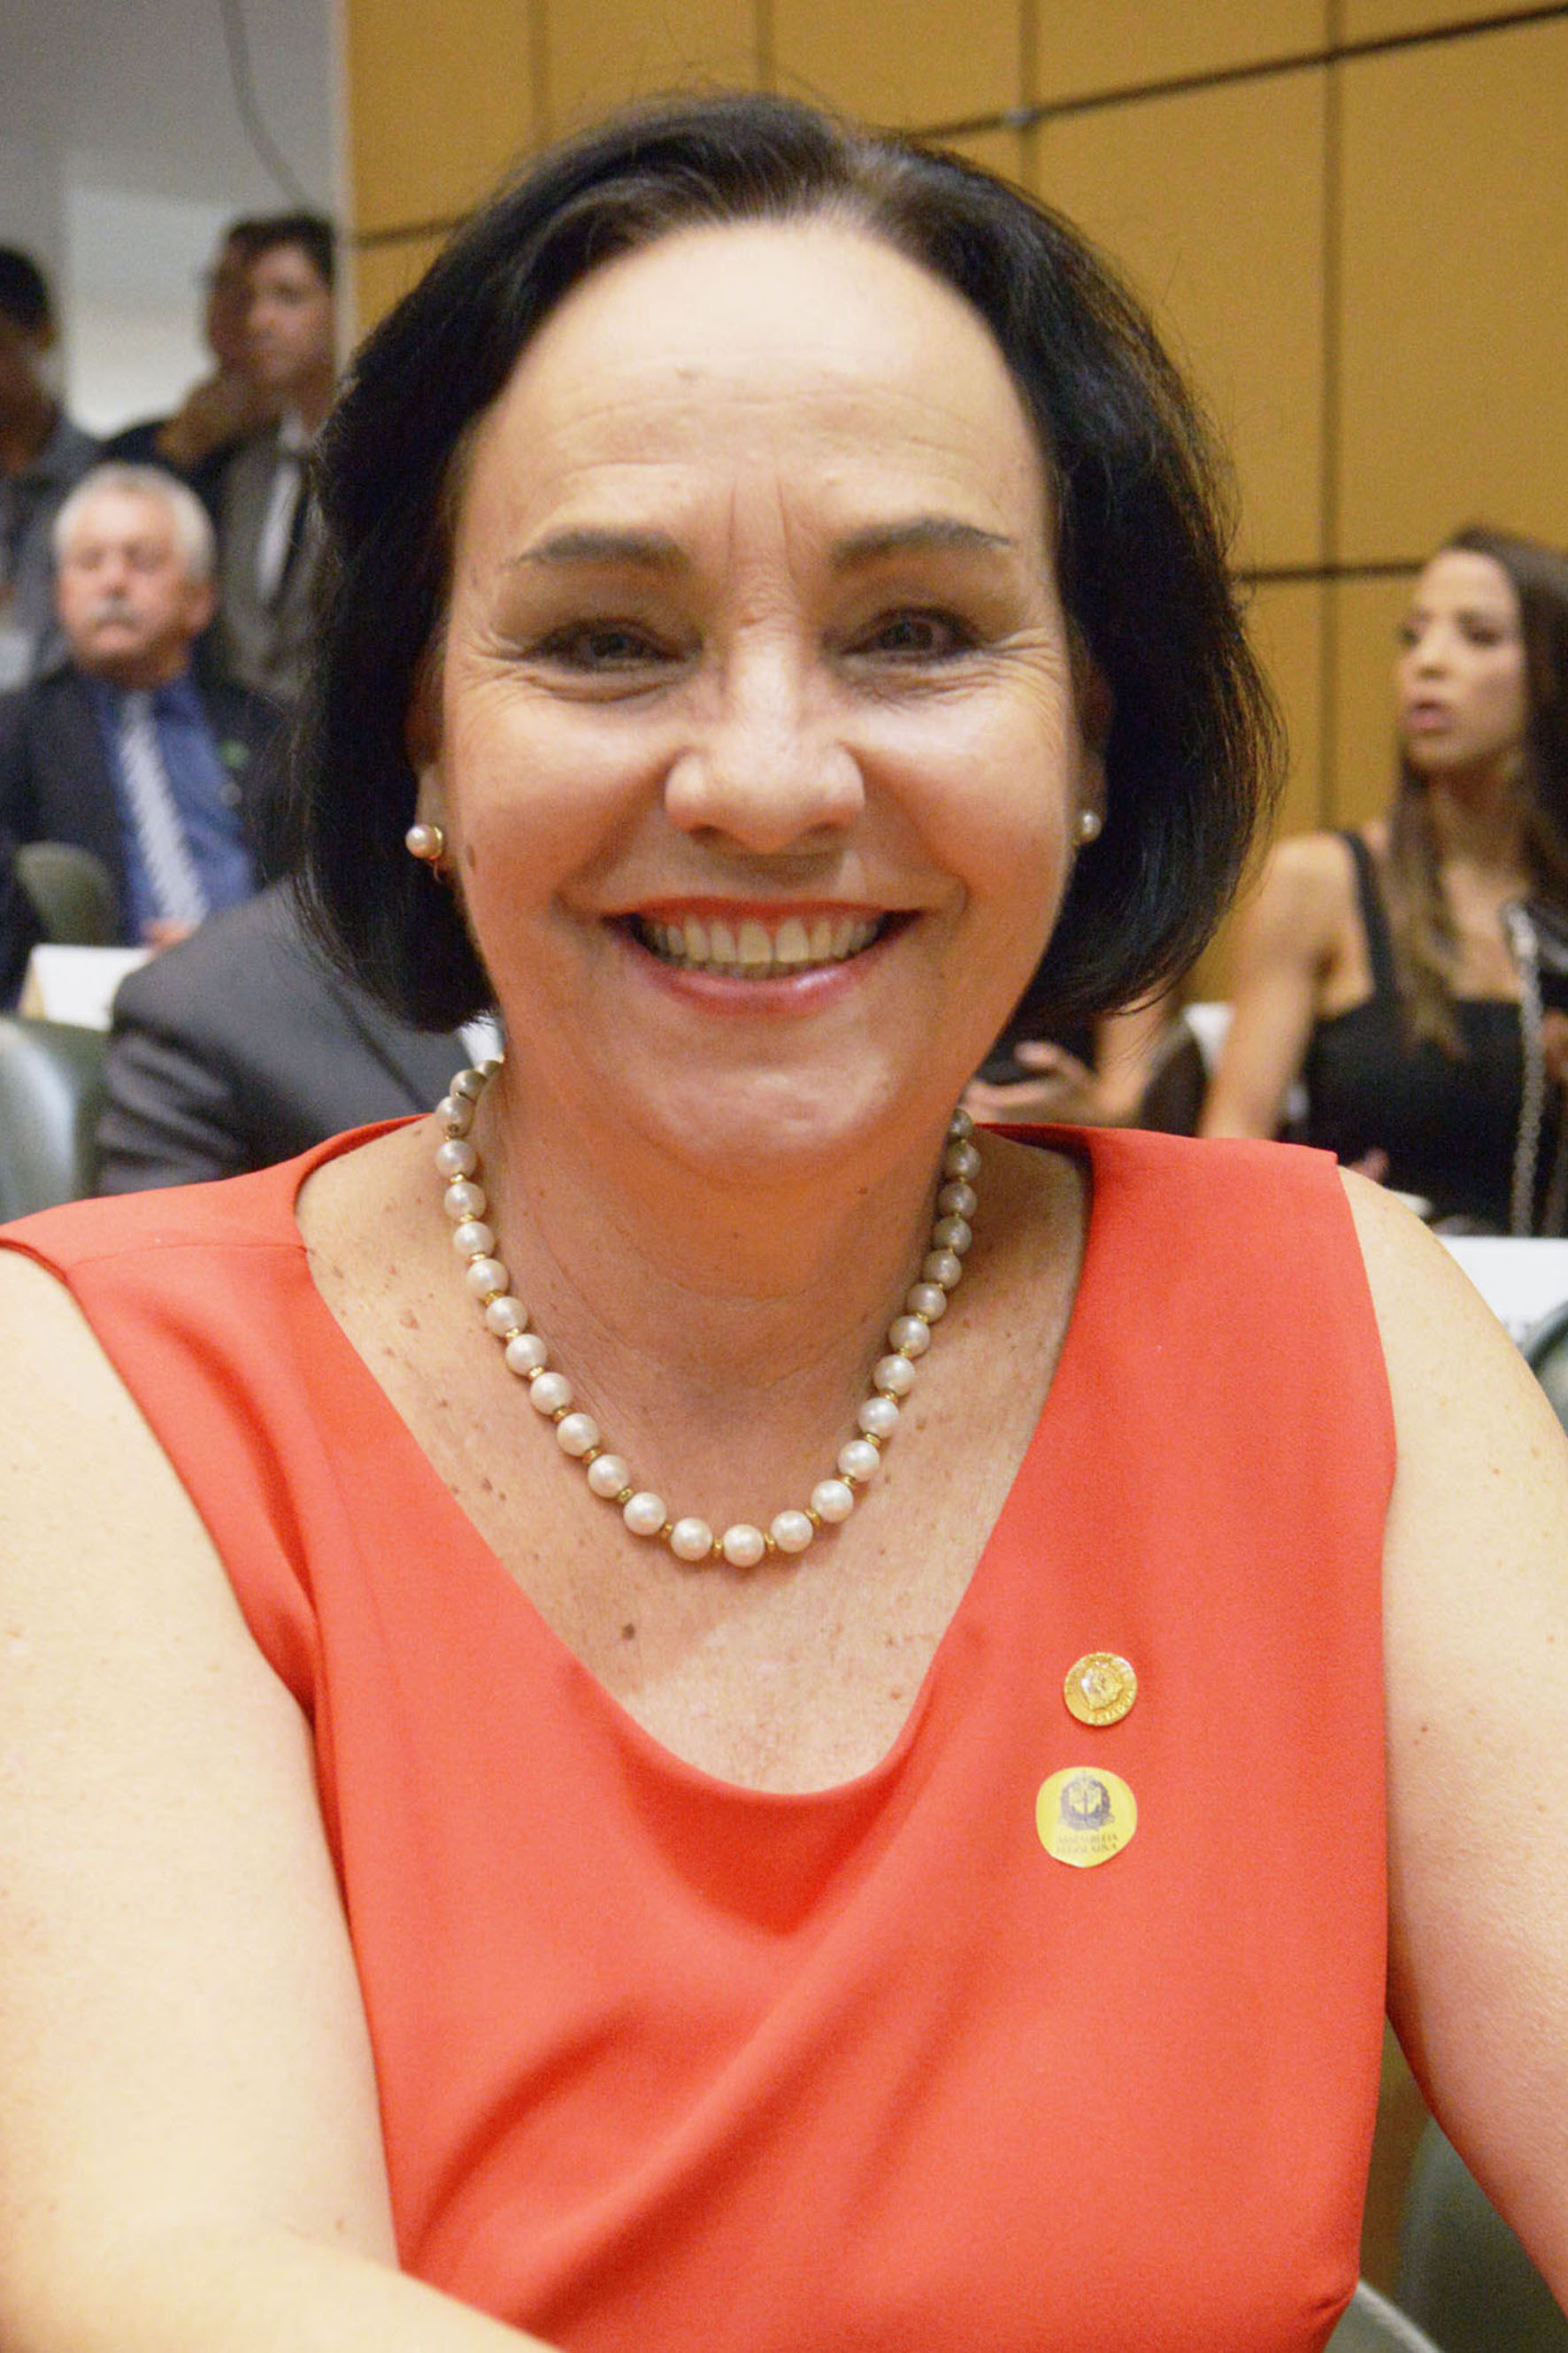 Márcia Lia<a style='float:right' href='https://www3.al.sp.gov.br/repositorio/noticia/N-09-2020/fg254729.jpg' target=_blank><img src='/_img/material-file-download-white.png' width='14px' alt='Clique para baixar a imagem'></a>